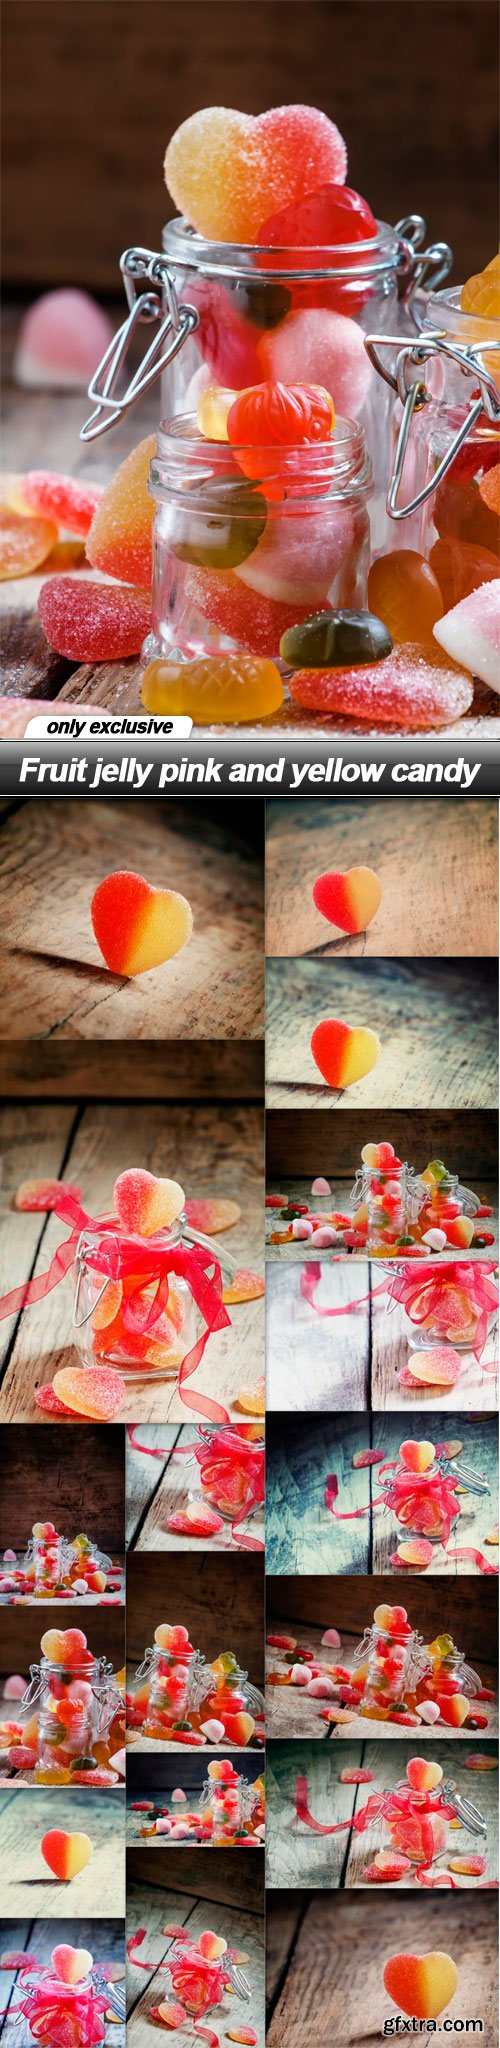 Fruit jelly pink and yellow candy - 18 UHQ JPEG